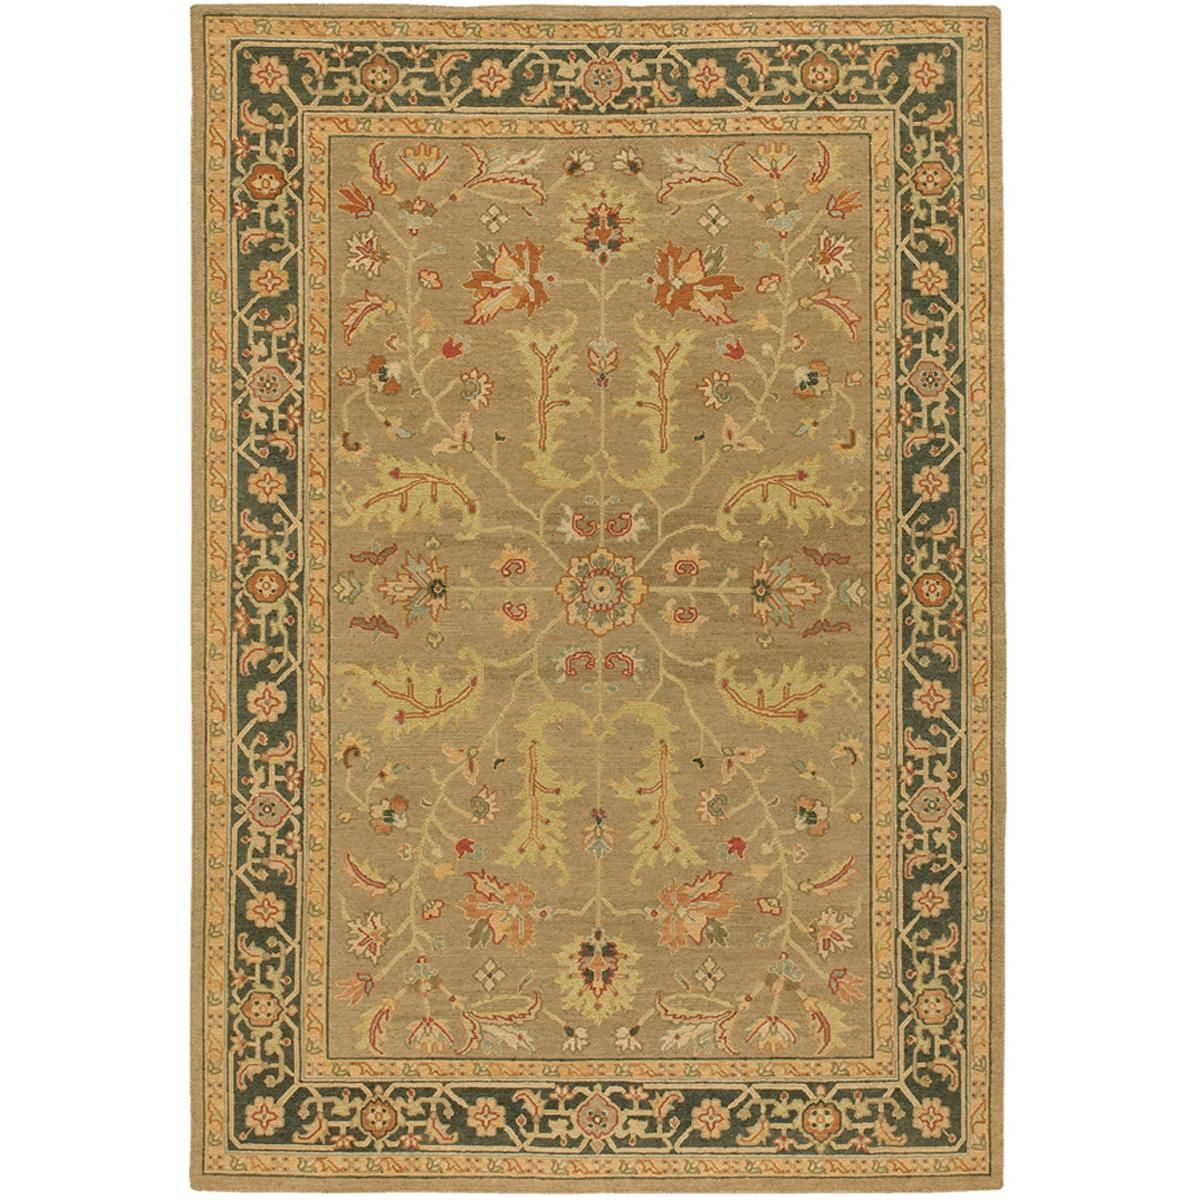 Traditional Hand Knotted Wool Soumak Rug Area Rugs Rugs Chandra Rugs